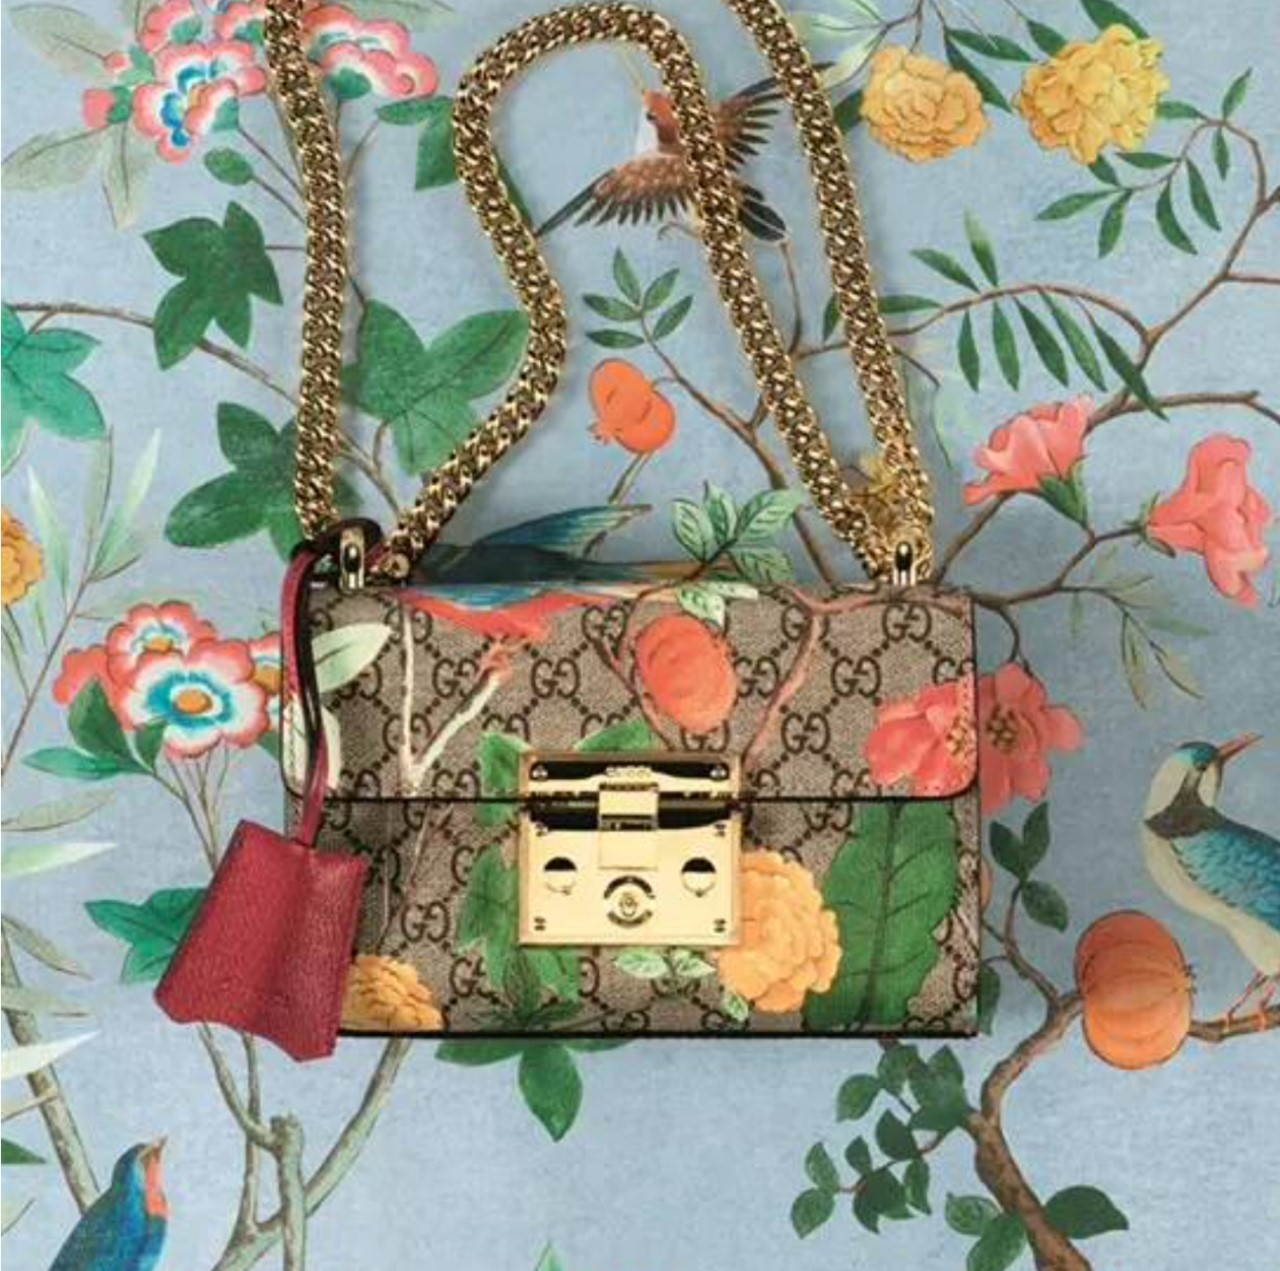 Gucci's pioneering 'hybrid voice' on WeChat - Chinessima